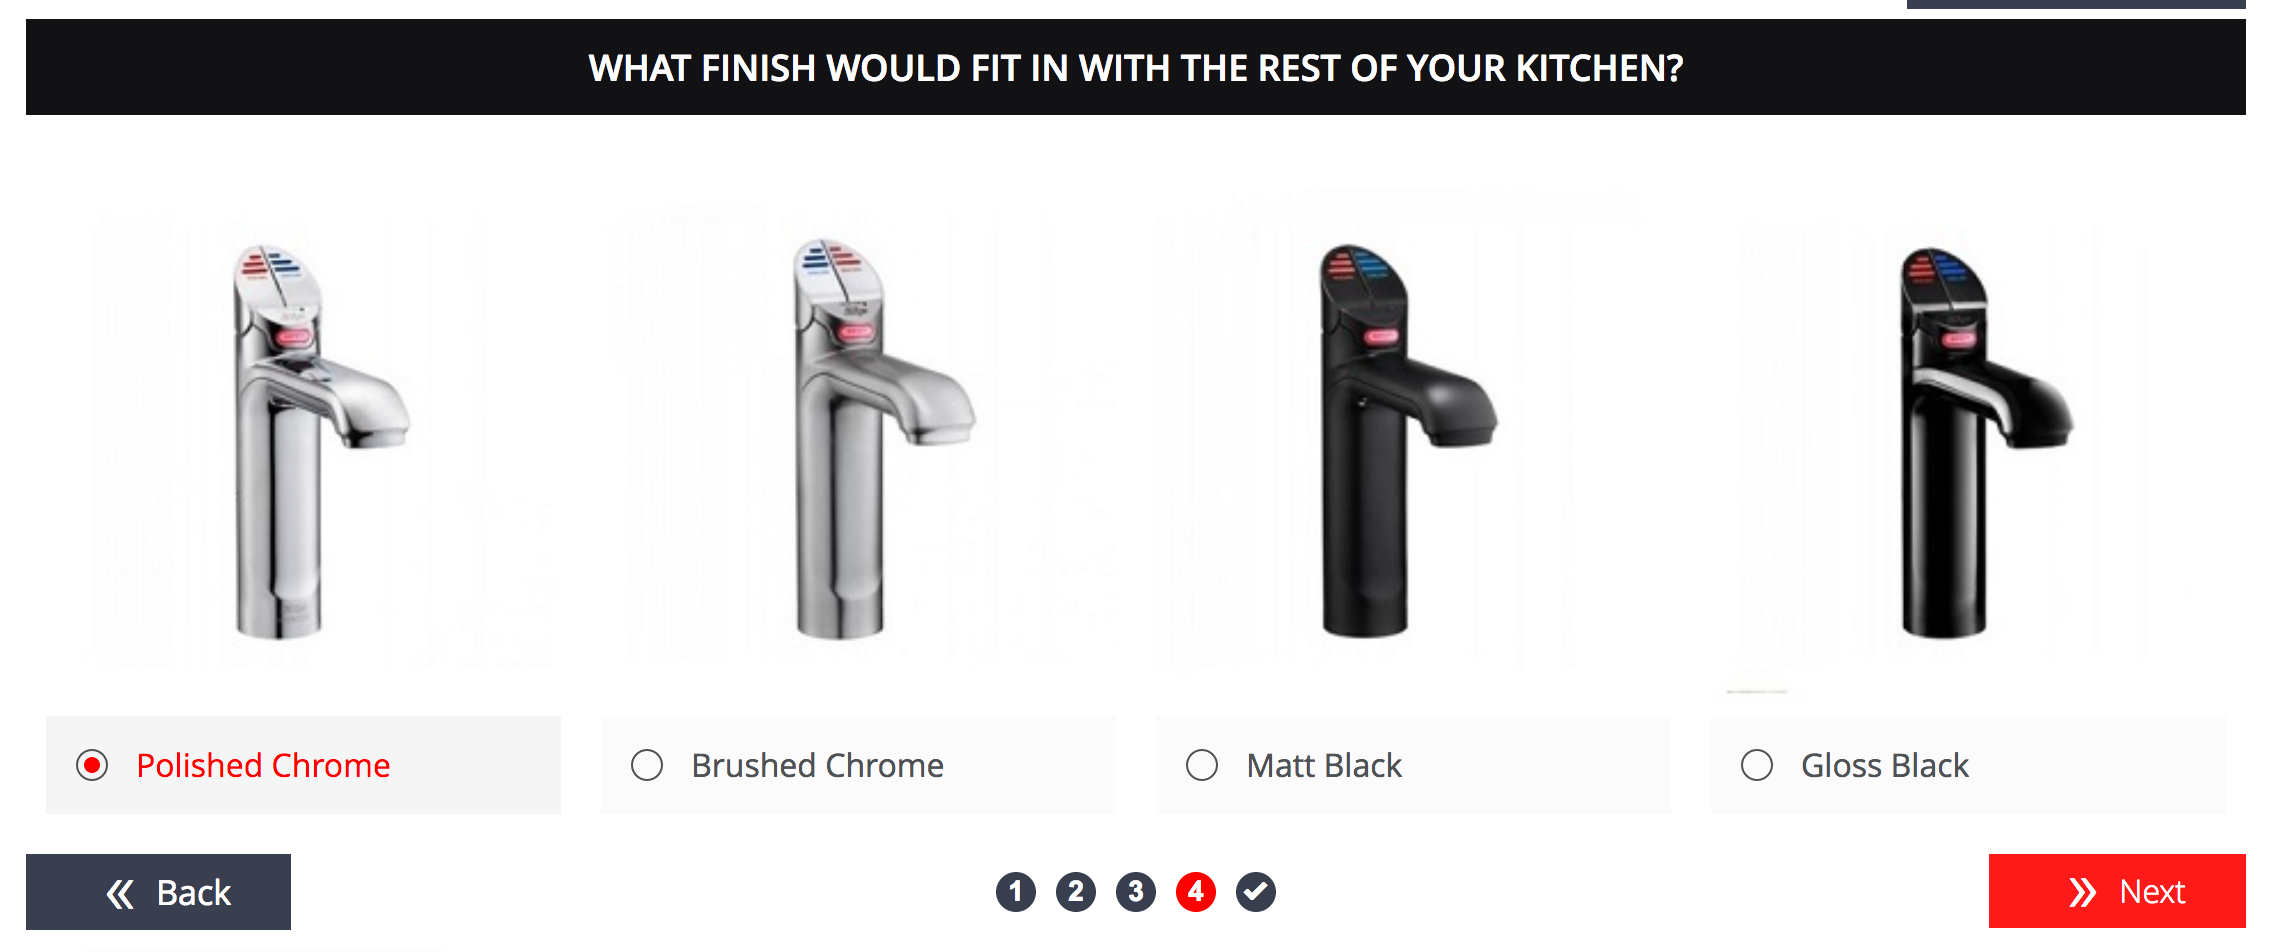 Using images on a product finder